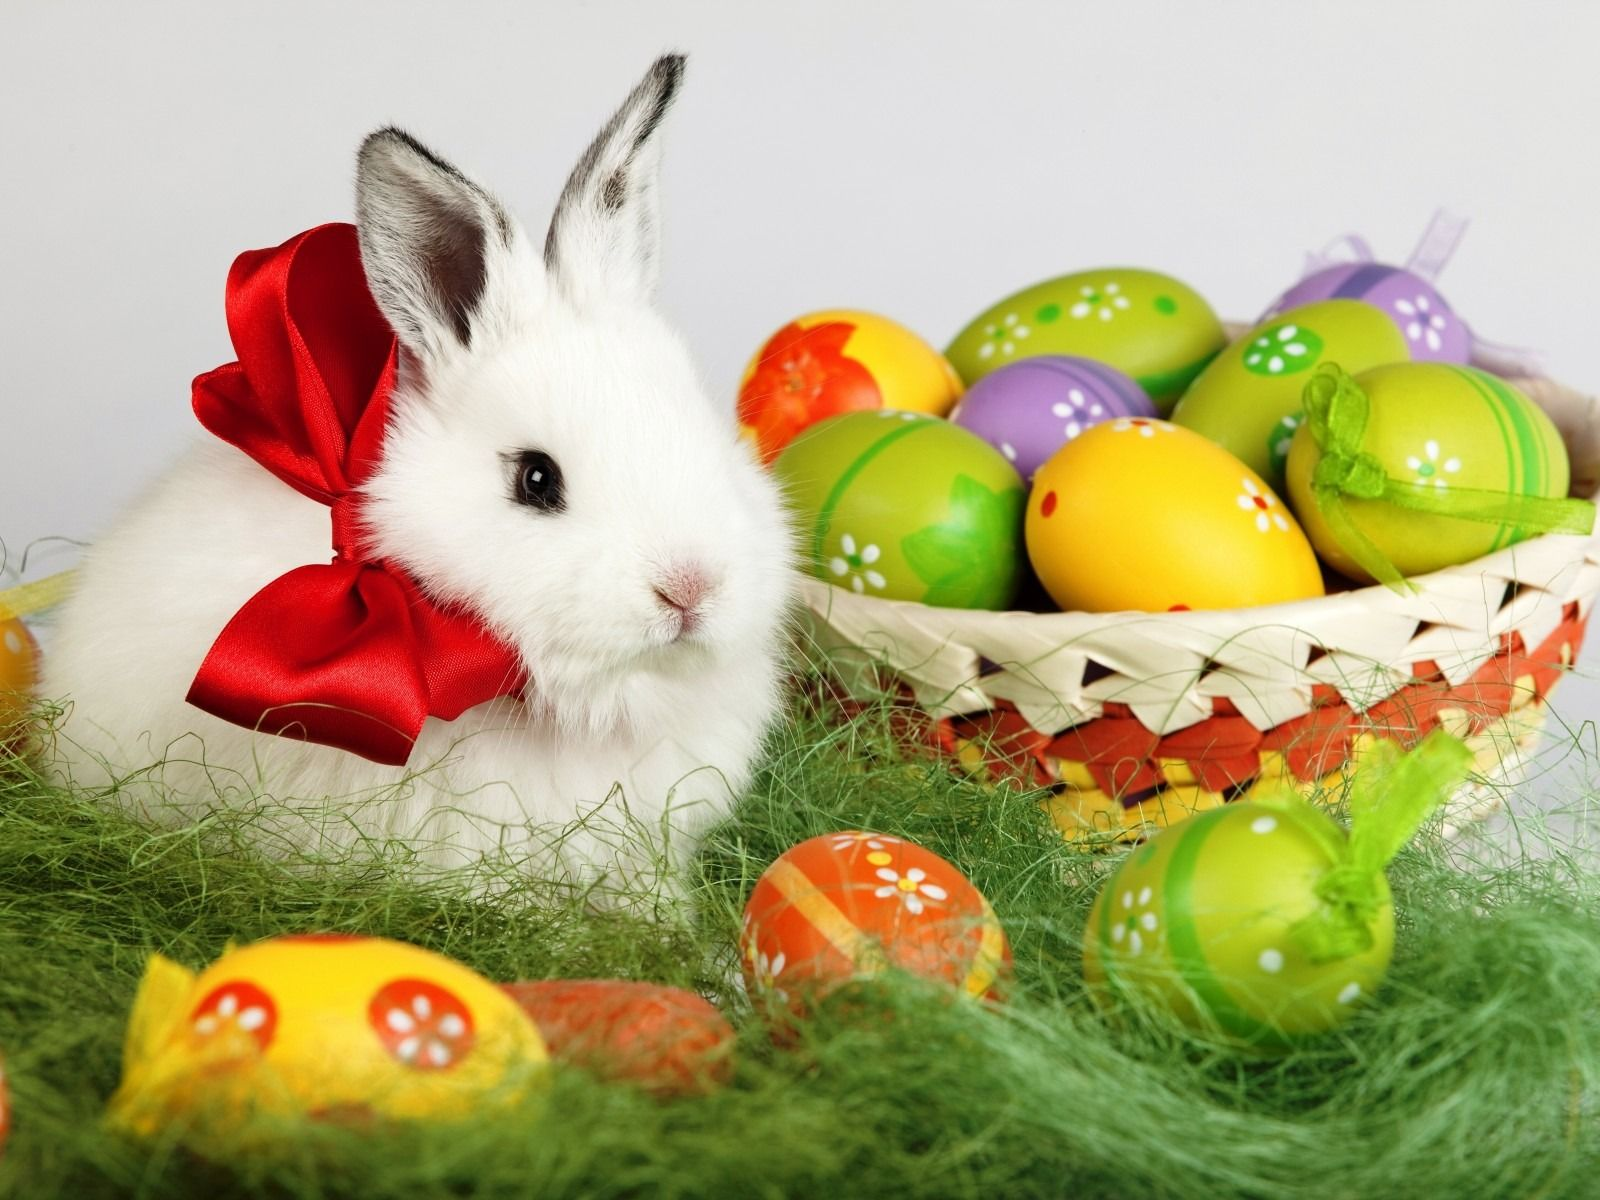 3 21 Weekly Roundup Easter And Spring Break Are Here The Happy Easter Wallpaper Easter Wallpaper Easter Bunny Images